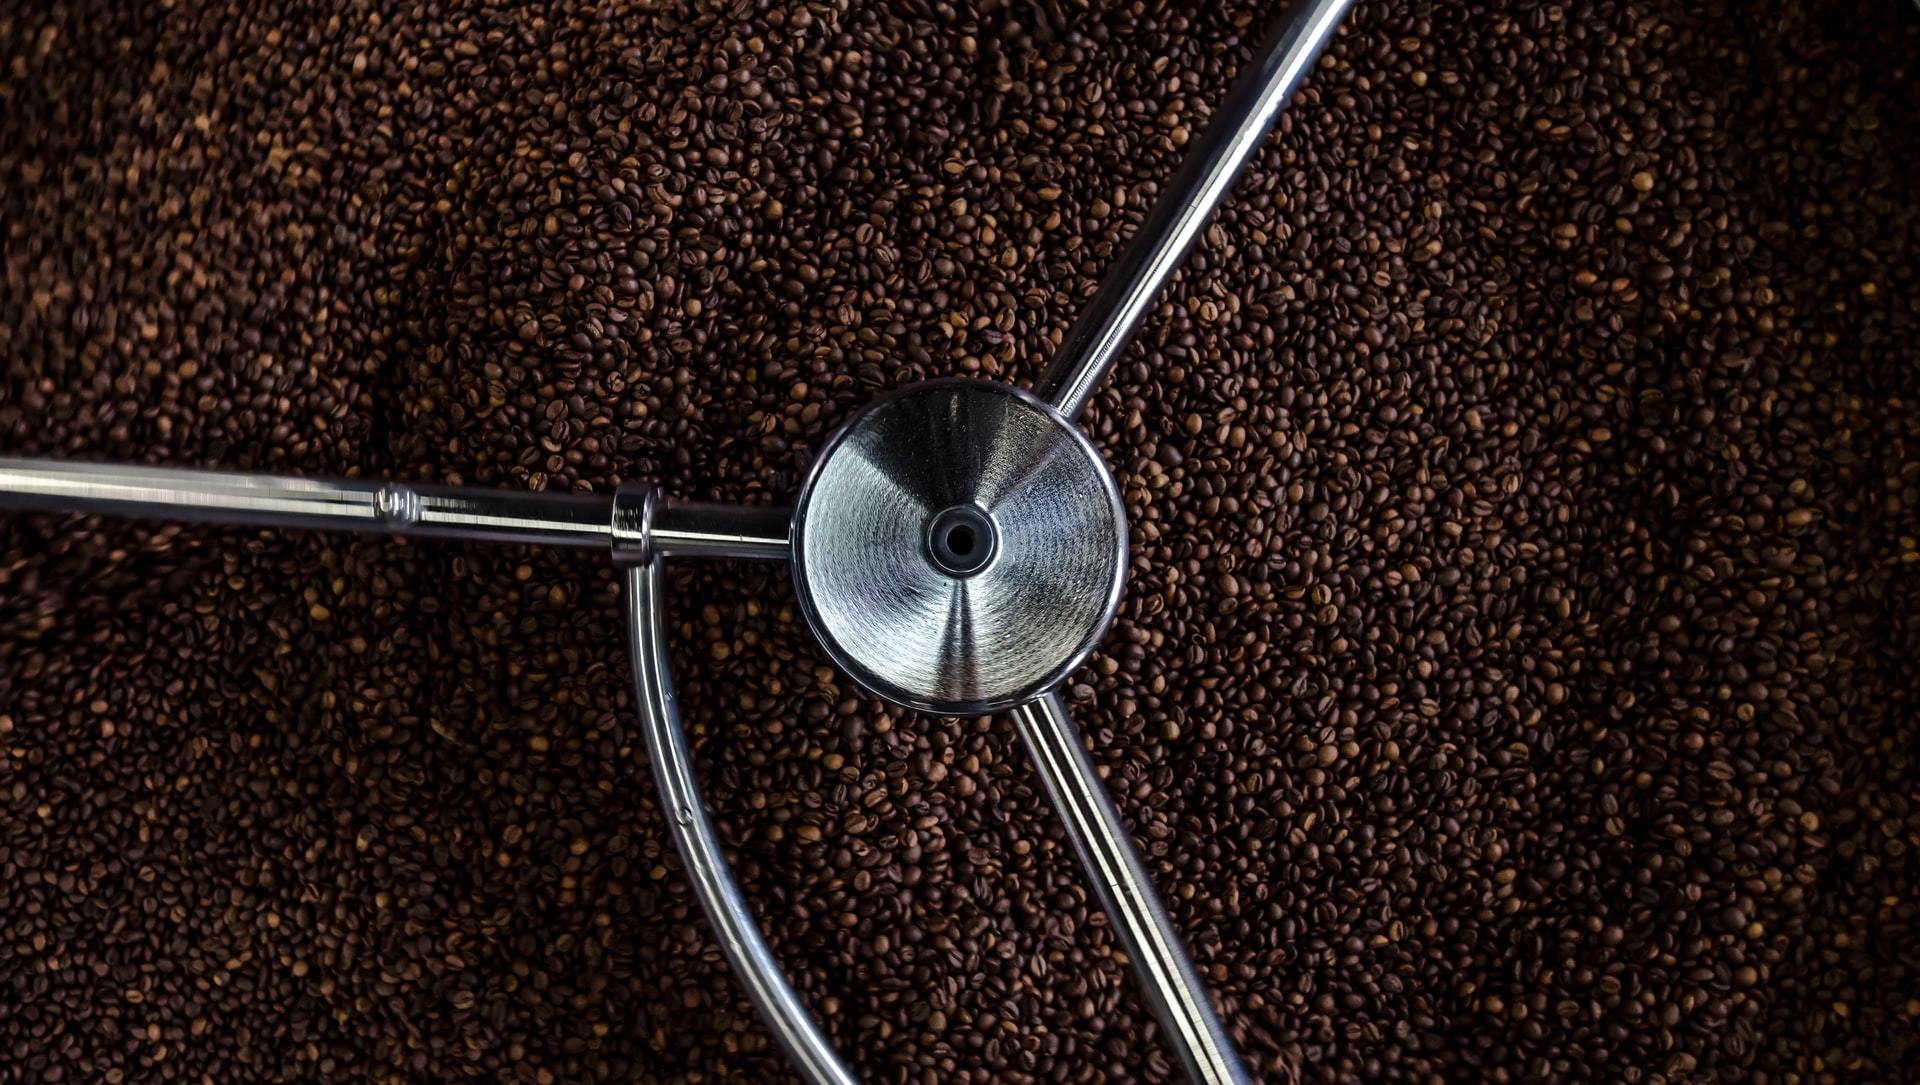 where to grind coffee beans